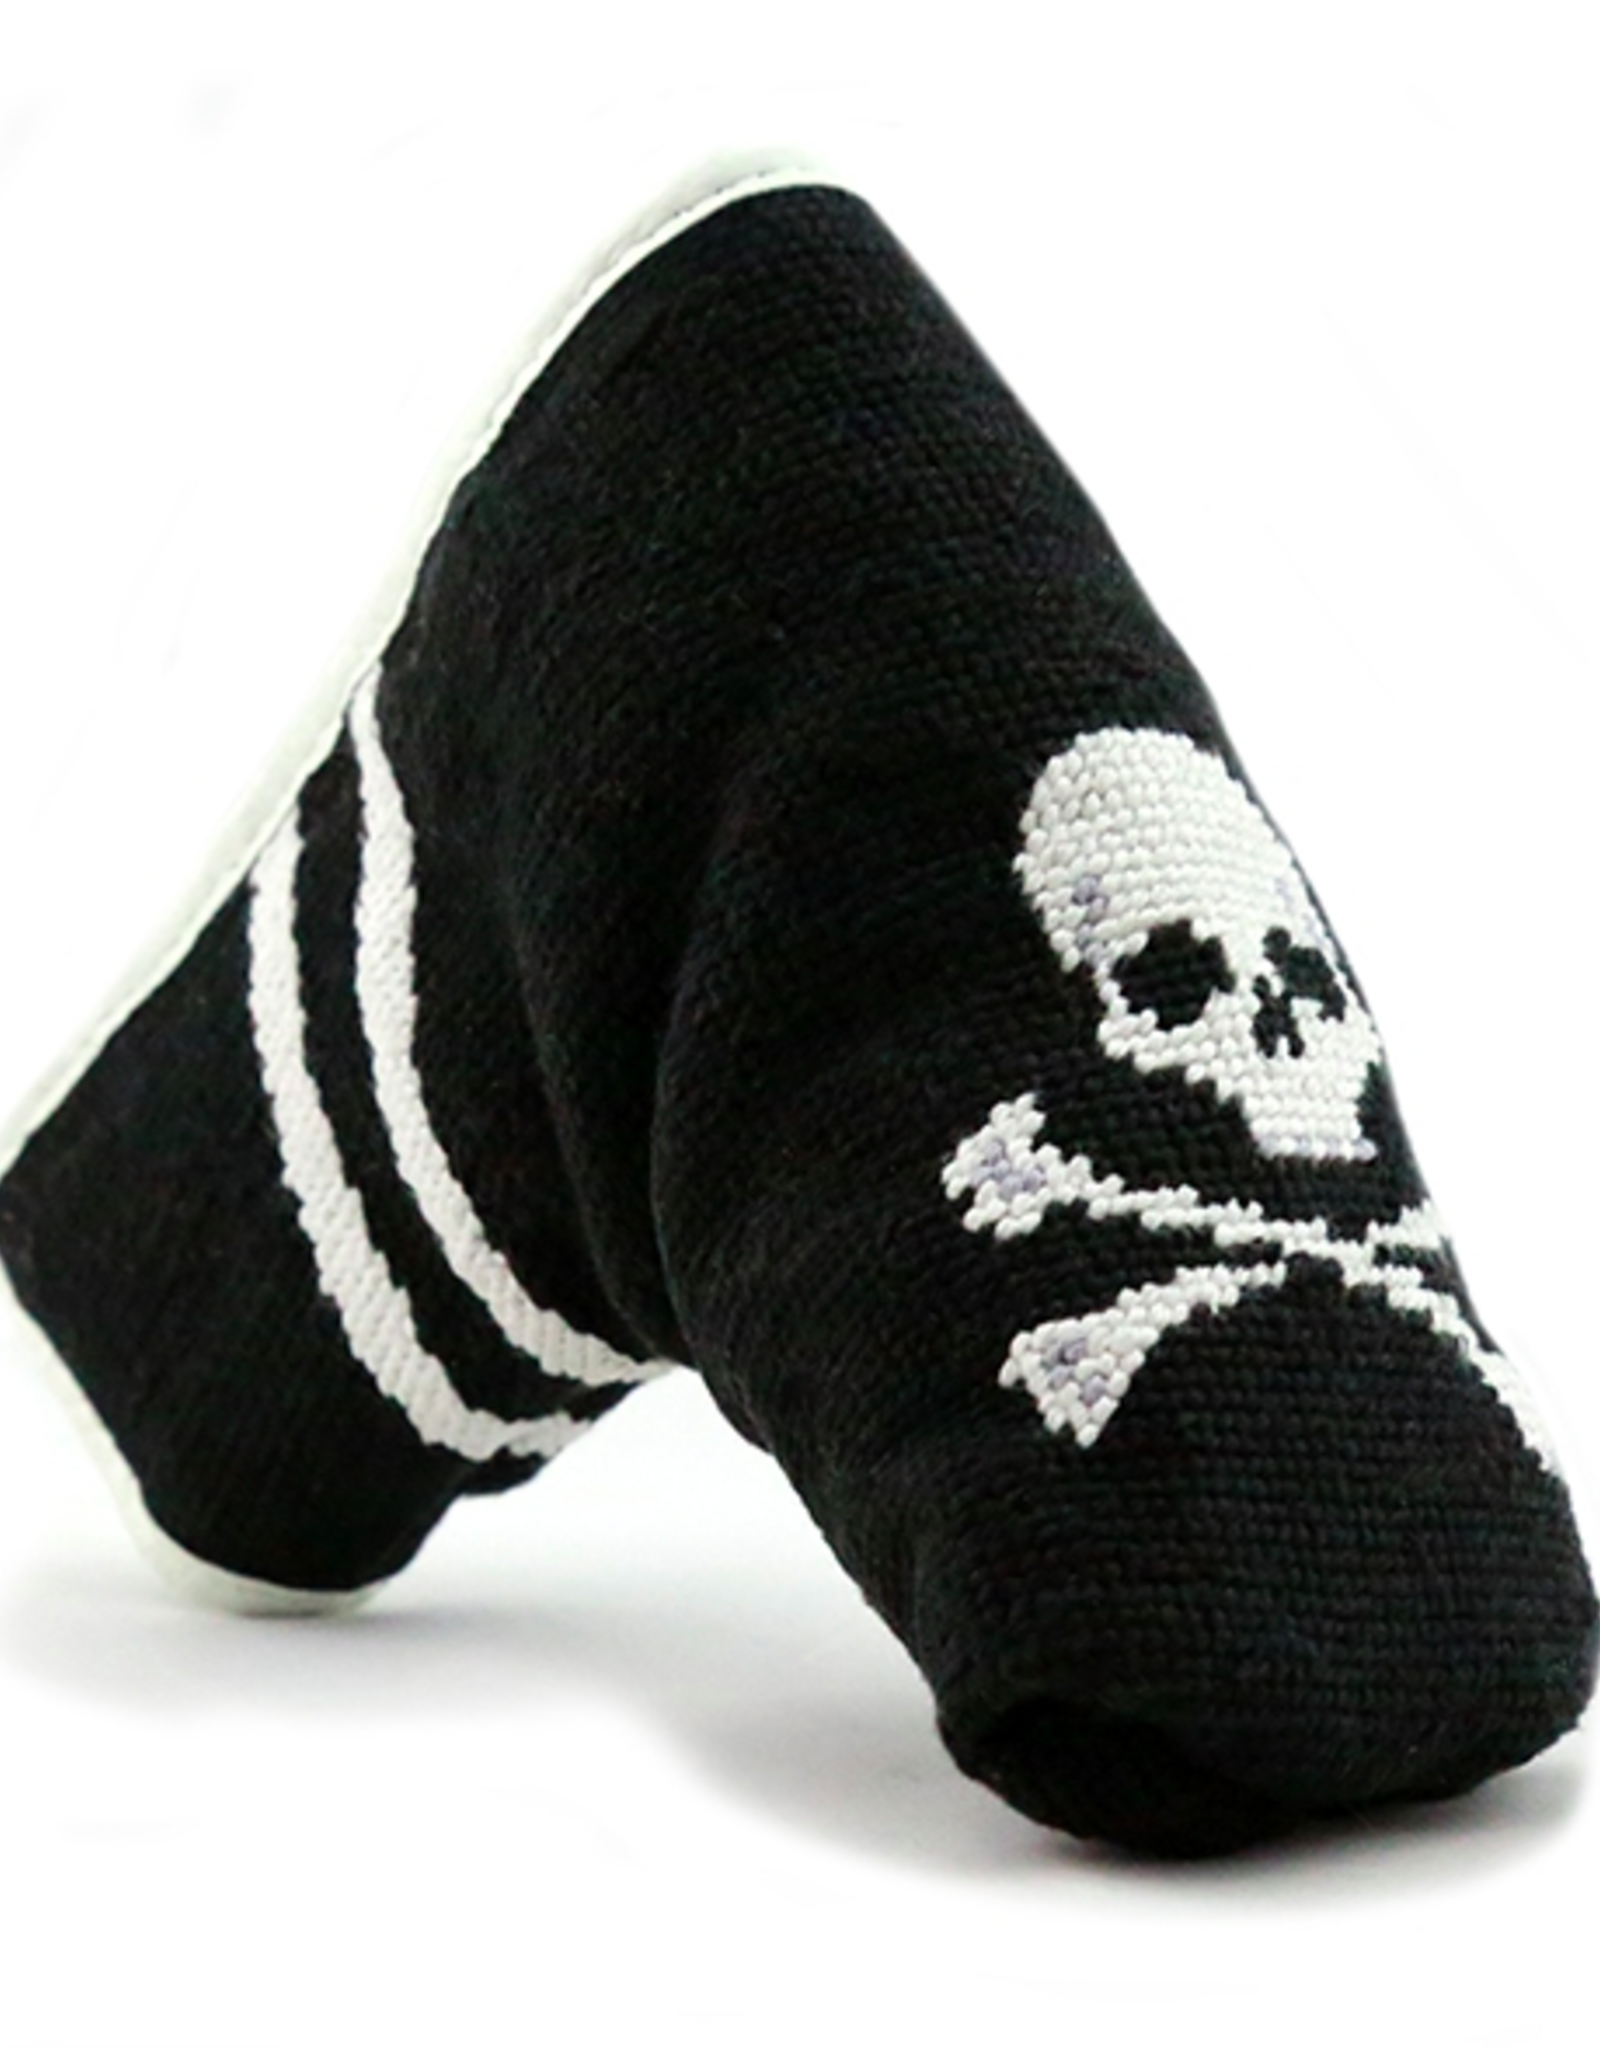 Smathers and Branson Putter Headcover